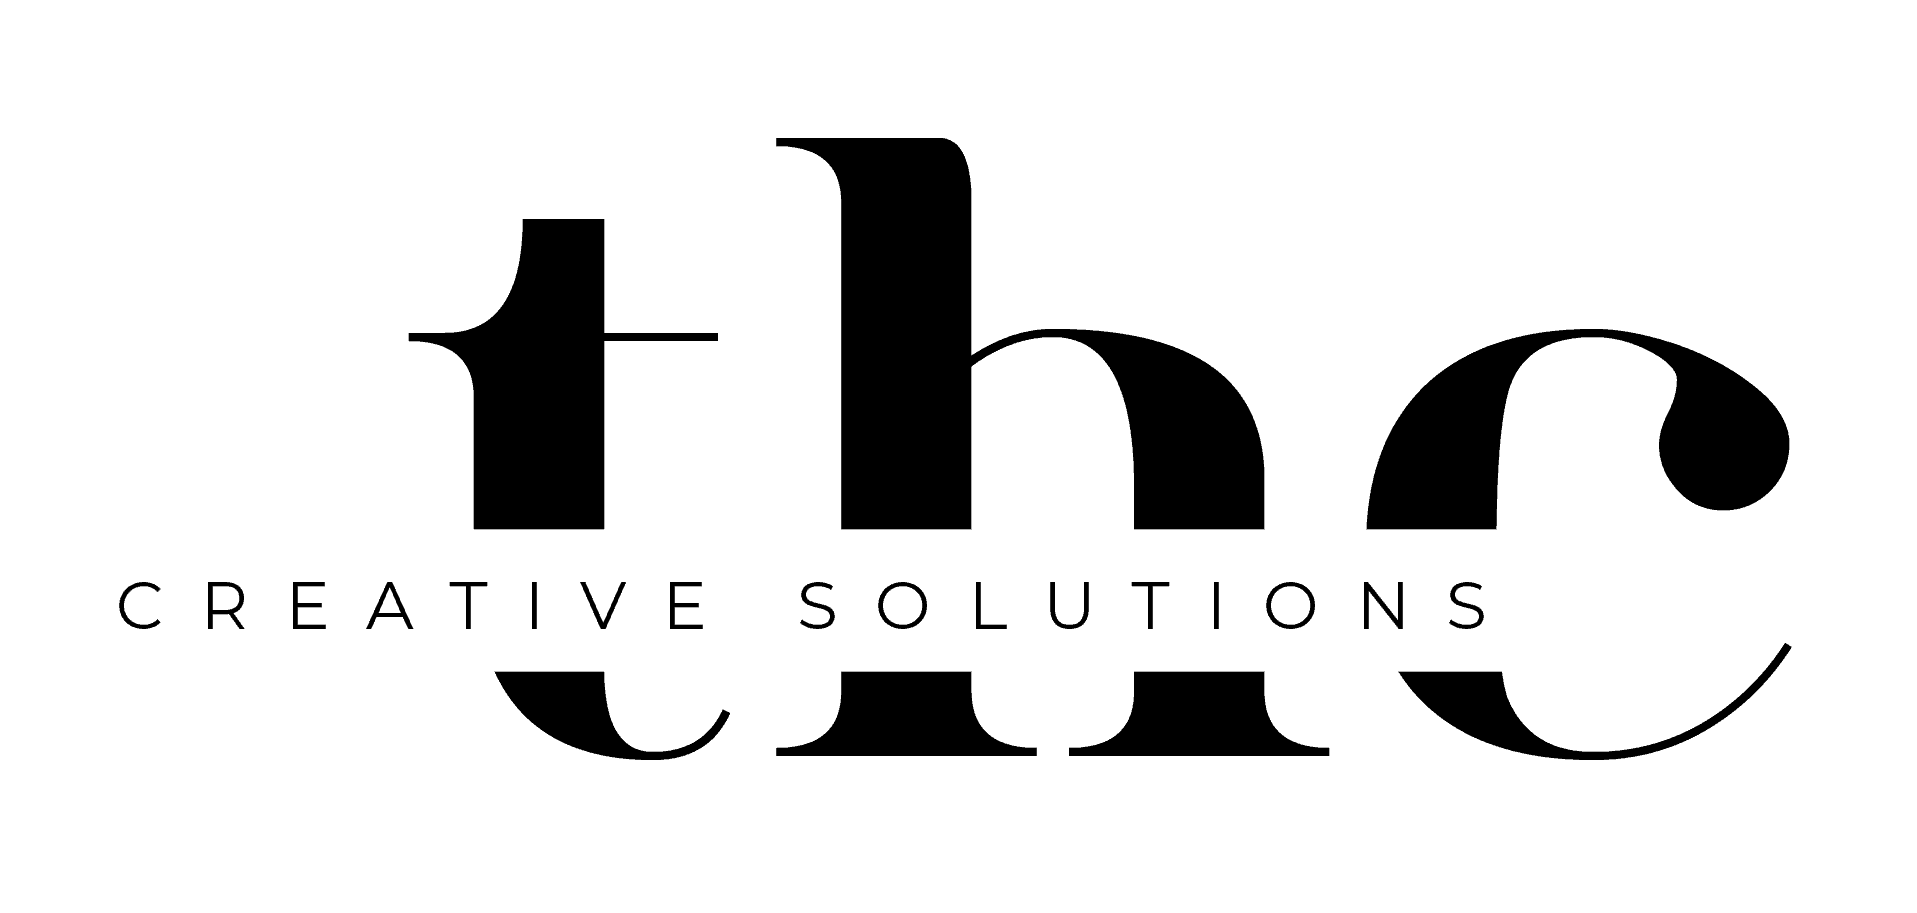 Total Hemp and Cannabis Creative Solutions